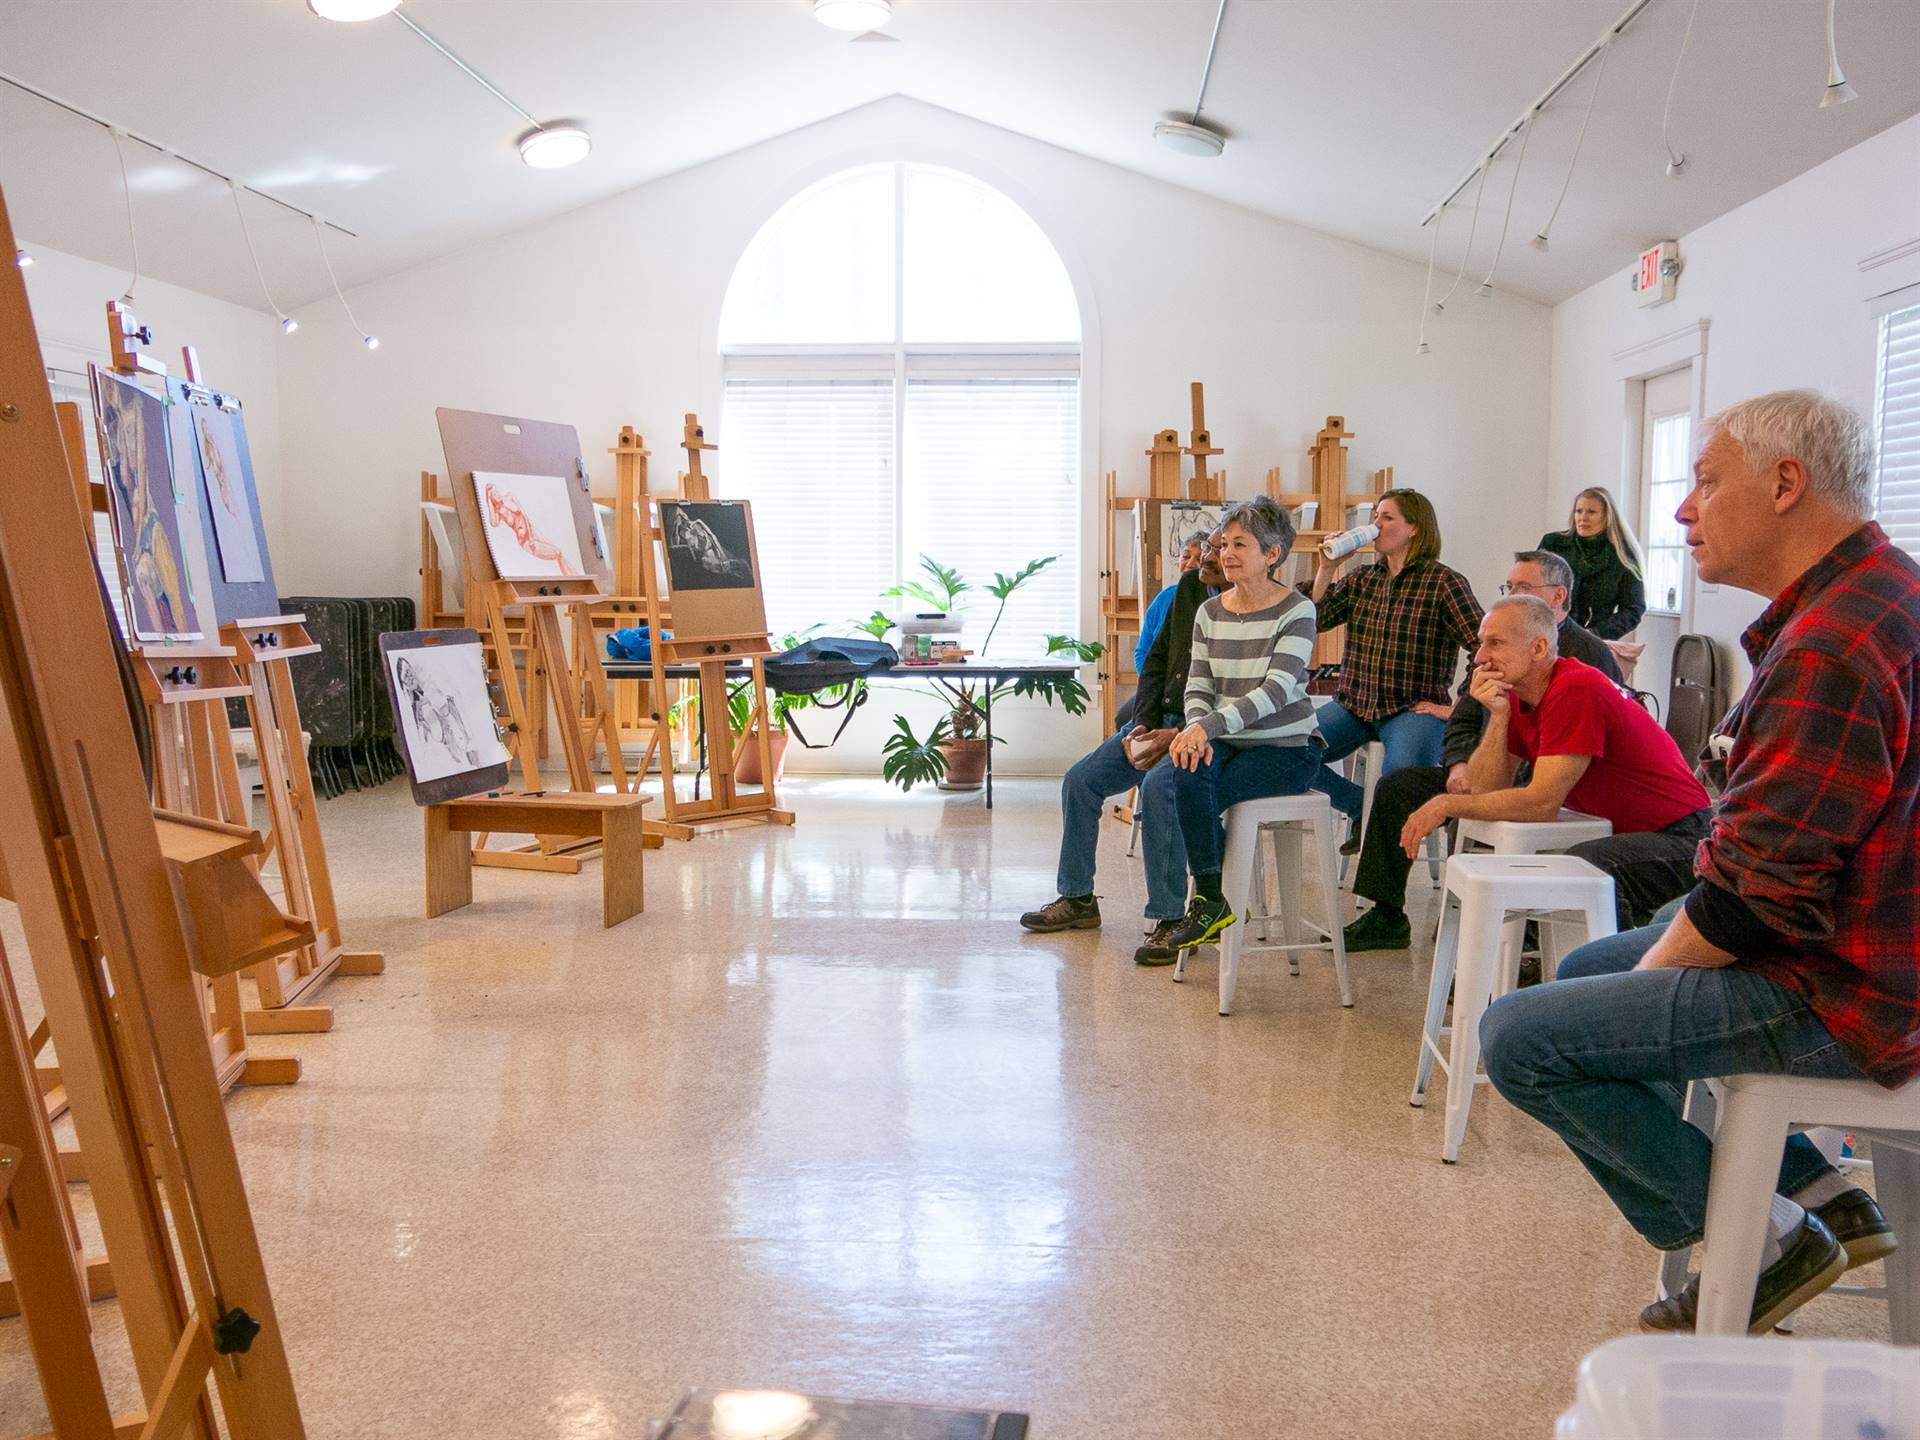 Art participants studying paintings on easels